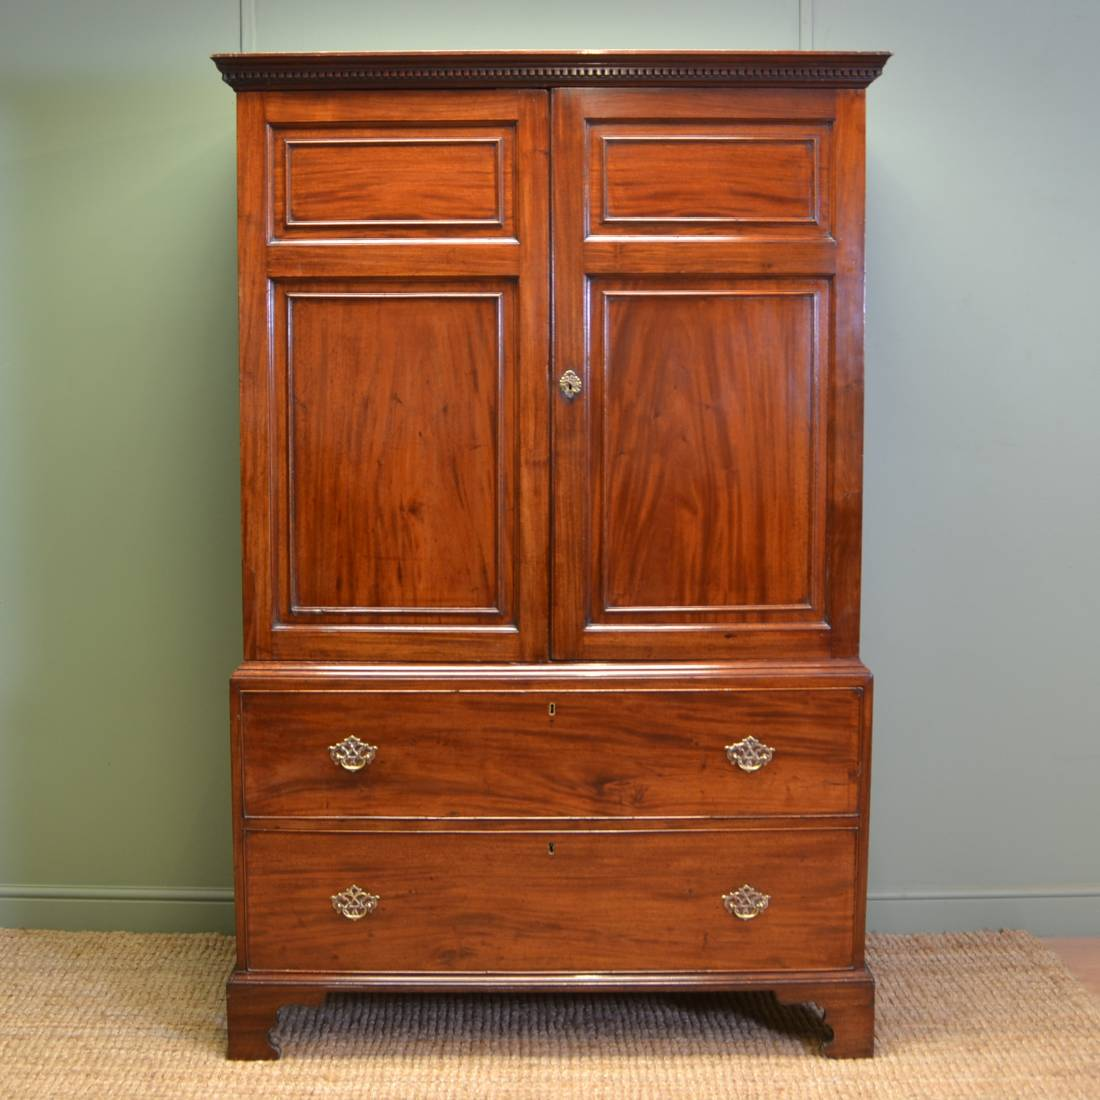 Quality georgian antique mahogany linen press antiques world for Linen press